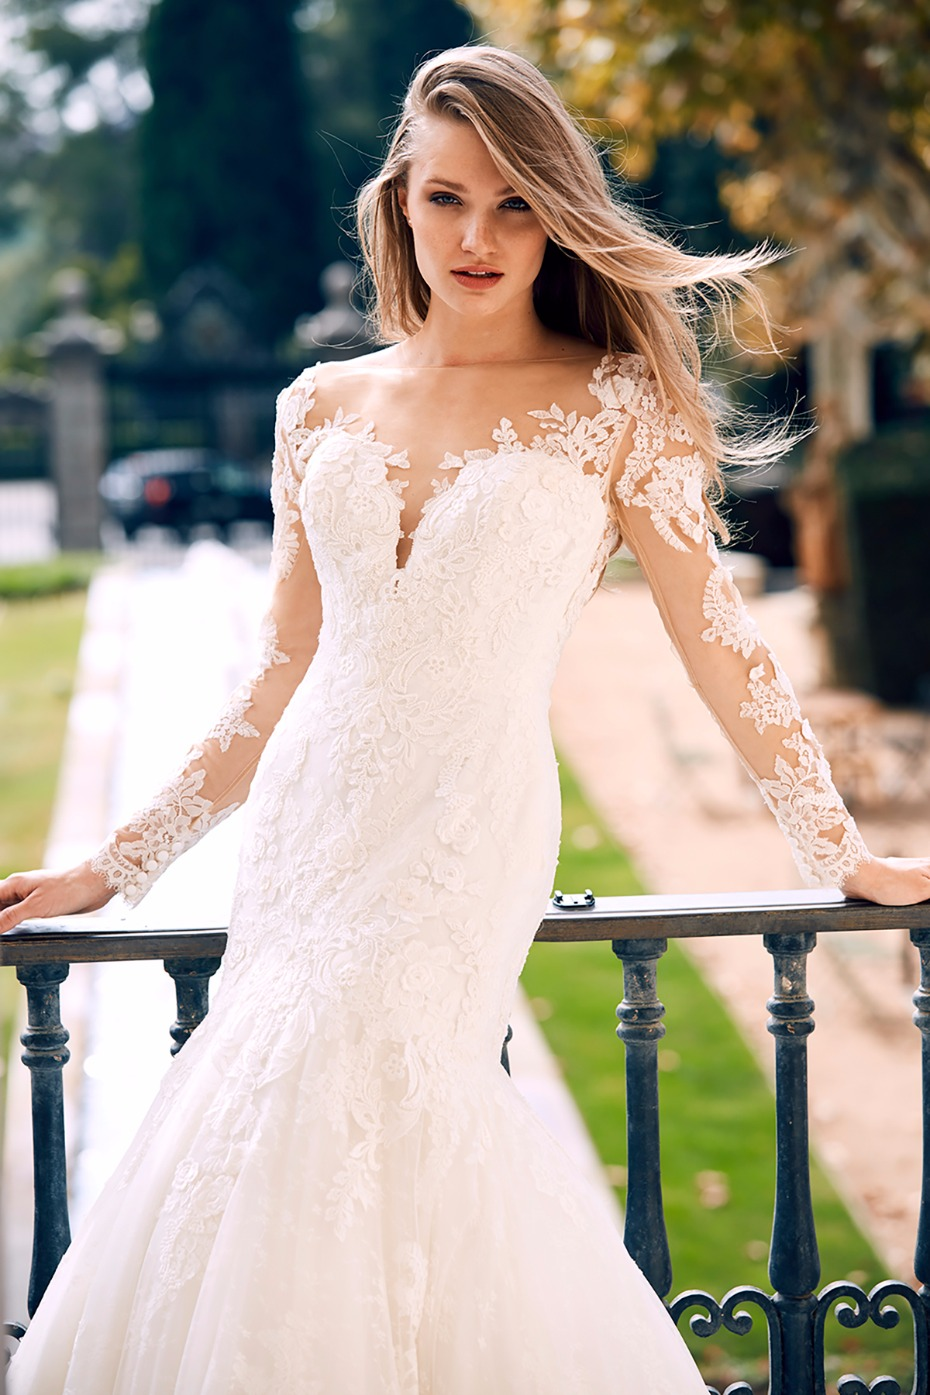 New princess wedding dresses from st patrick la sposa 2018 for La sposa wedding dresses